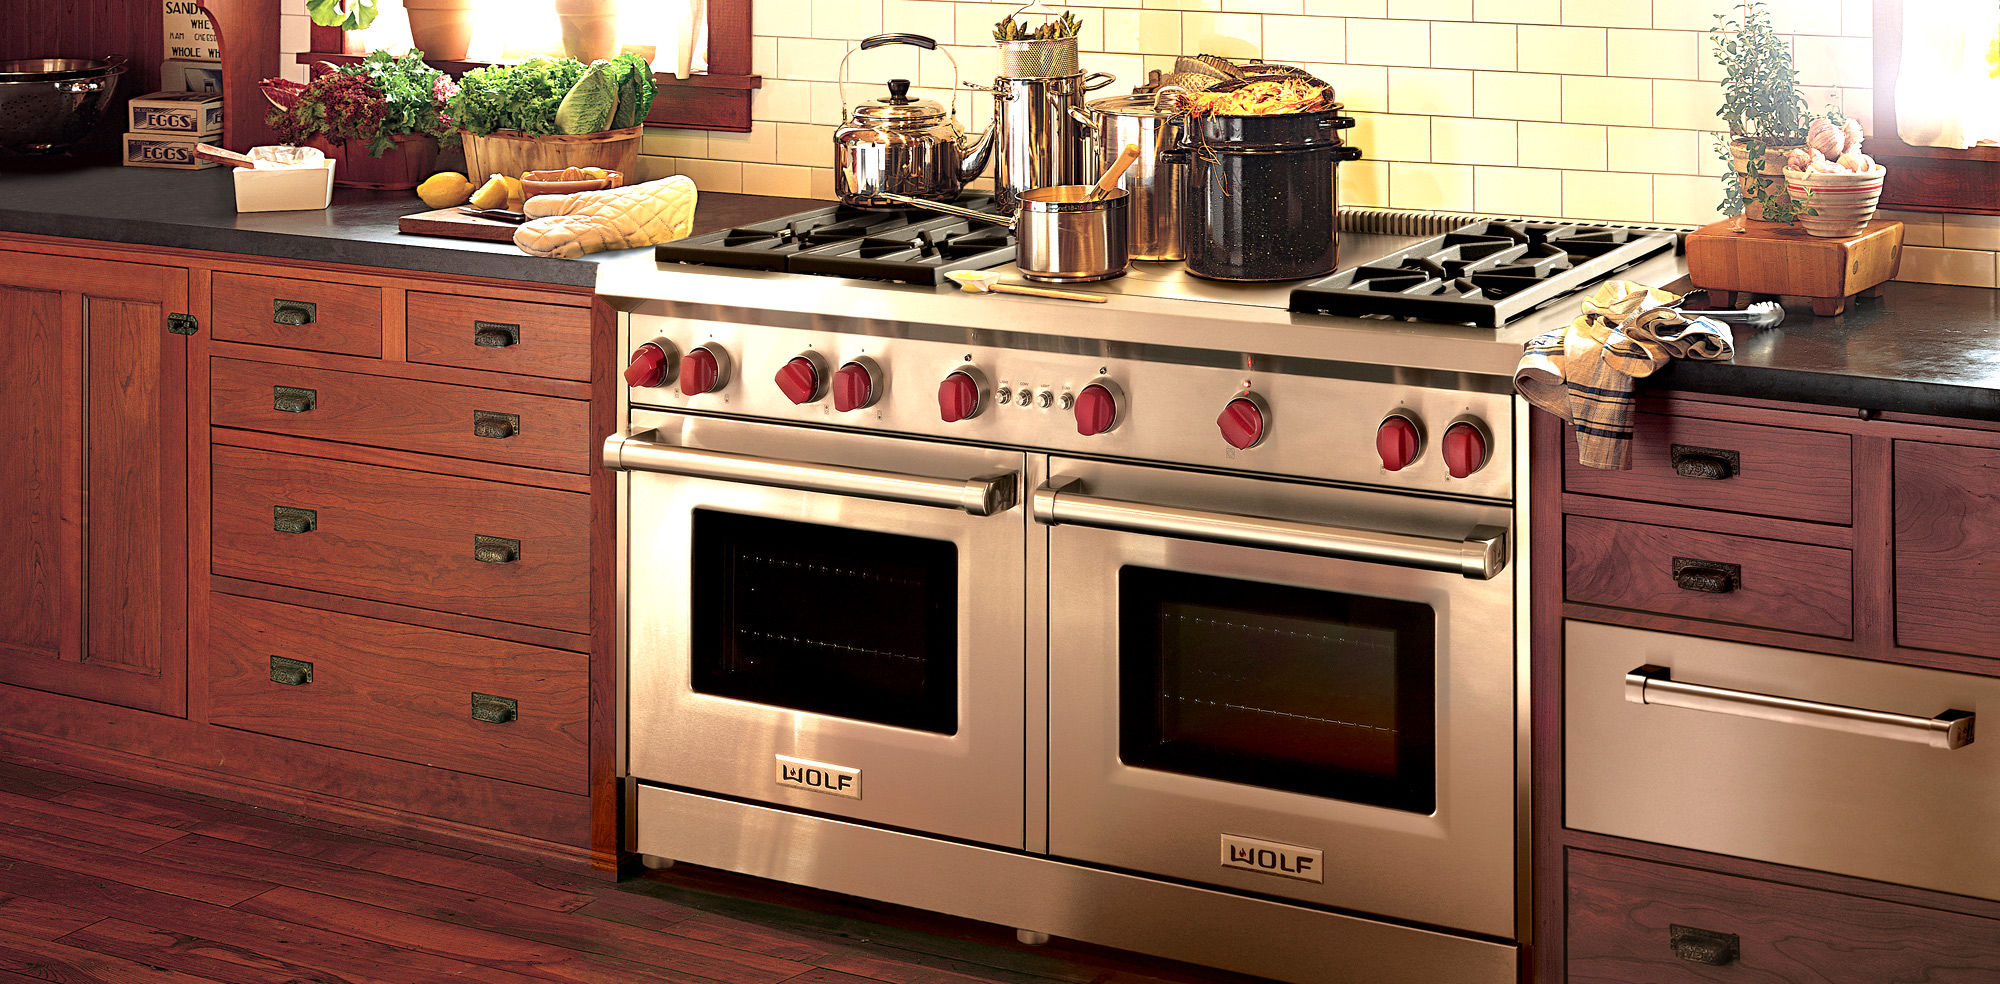 Best Collections of Diagram Gas Range - Download More Maps ...